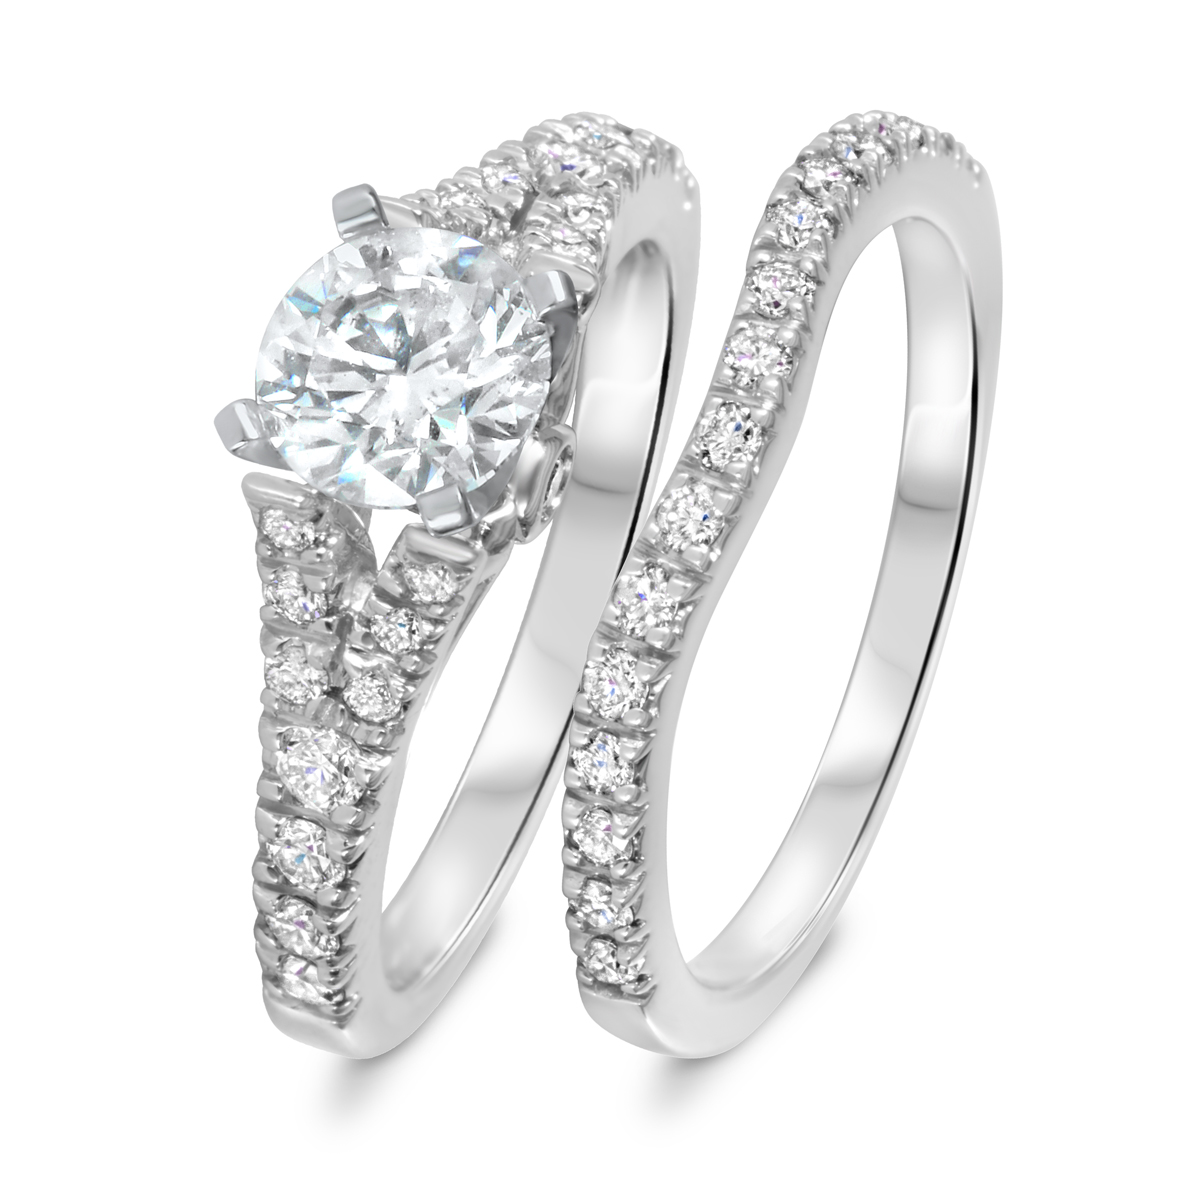 1 3/4 CT. T.W. Diamond Women's Bridal Wedding Ring Set 14K White Gold